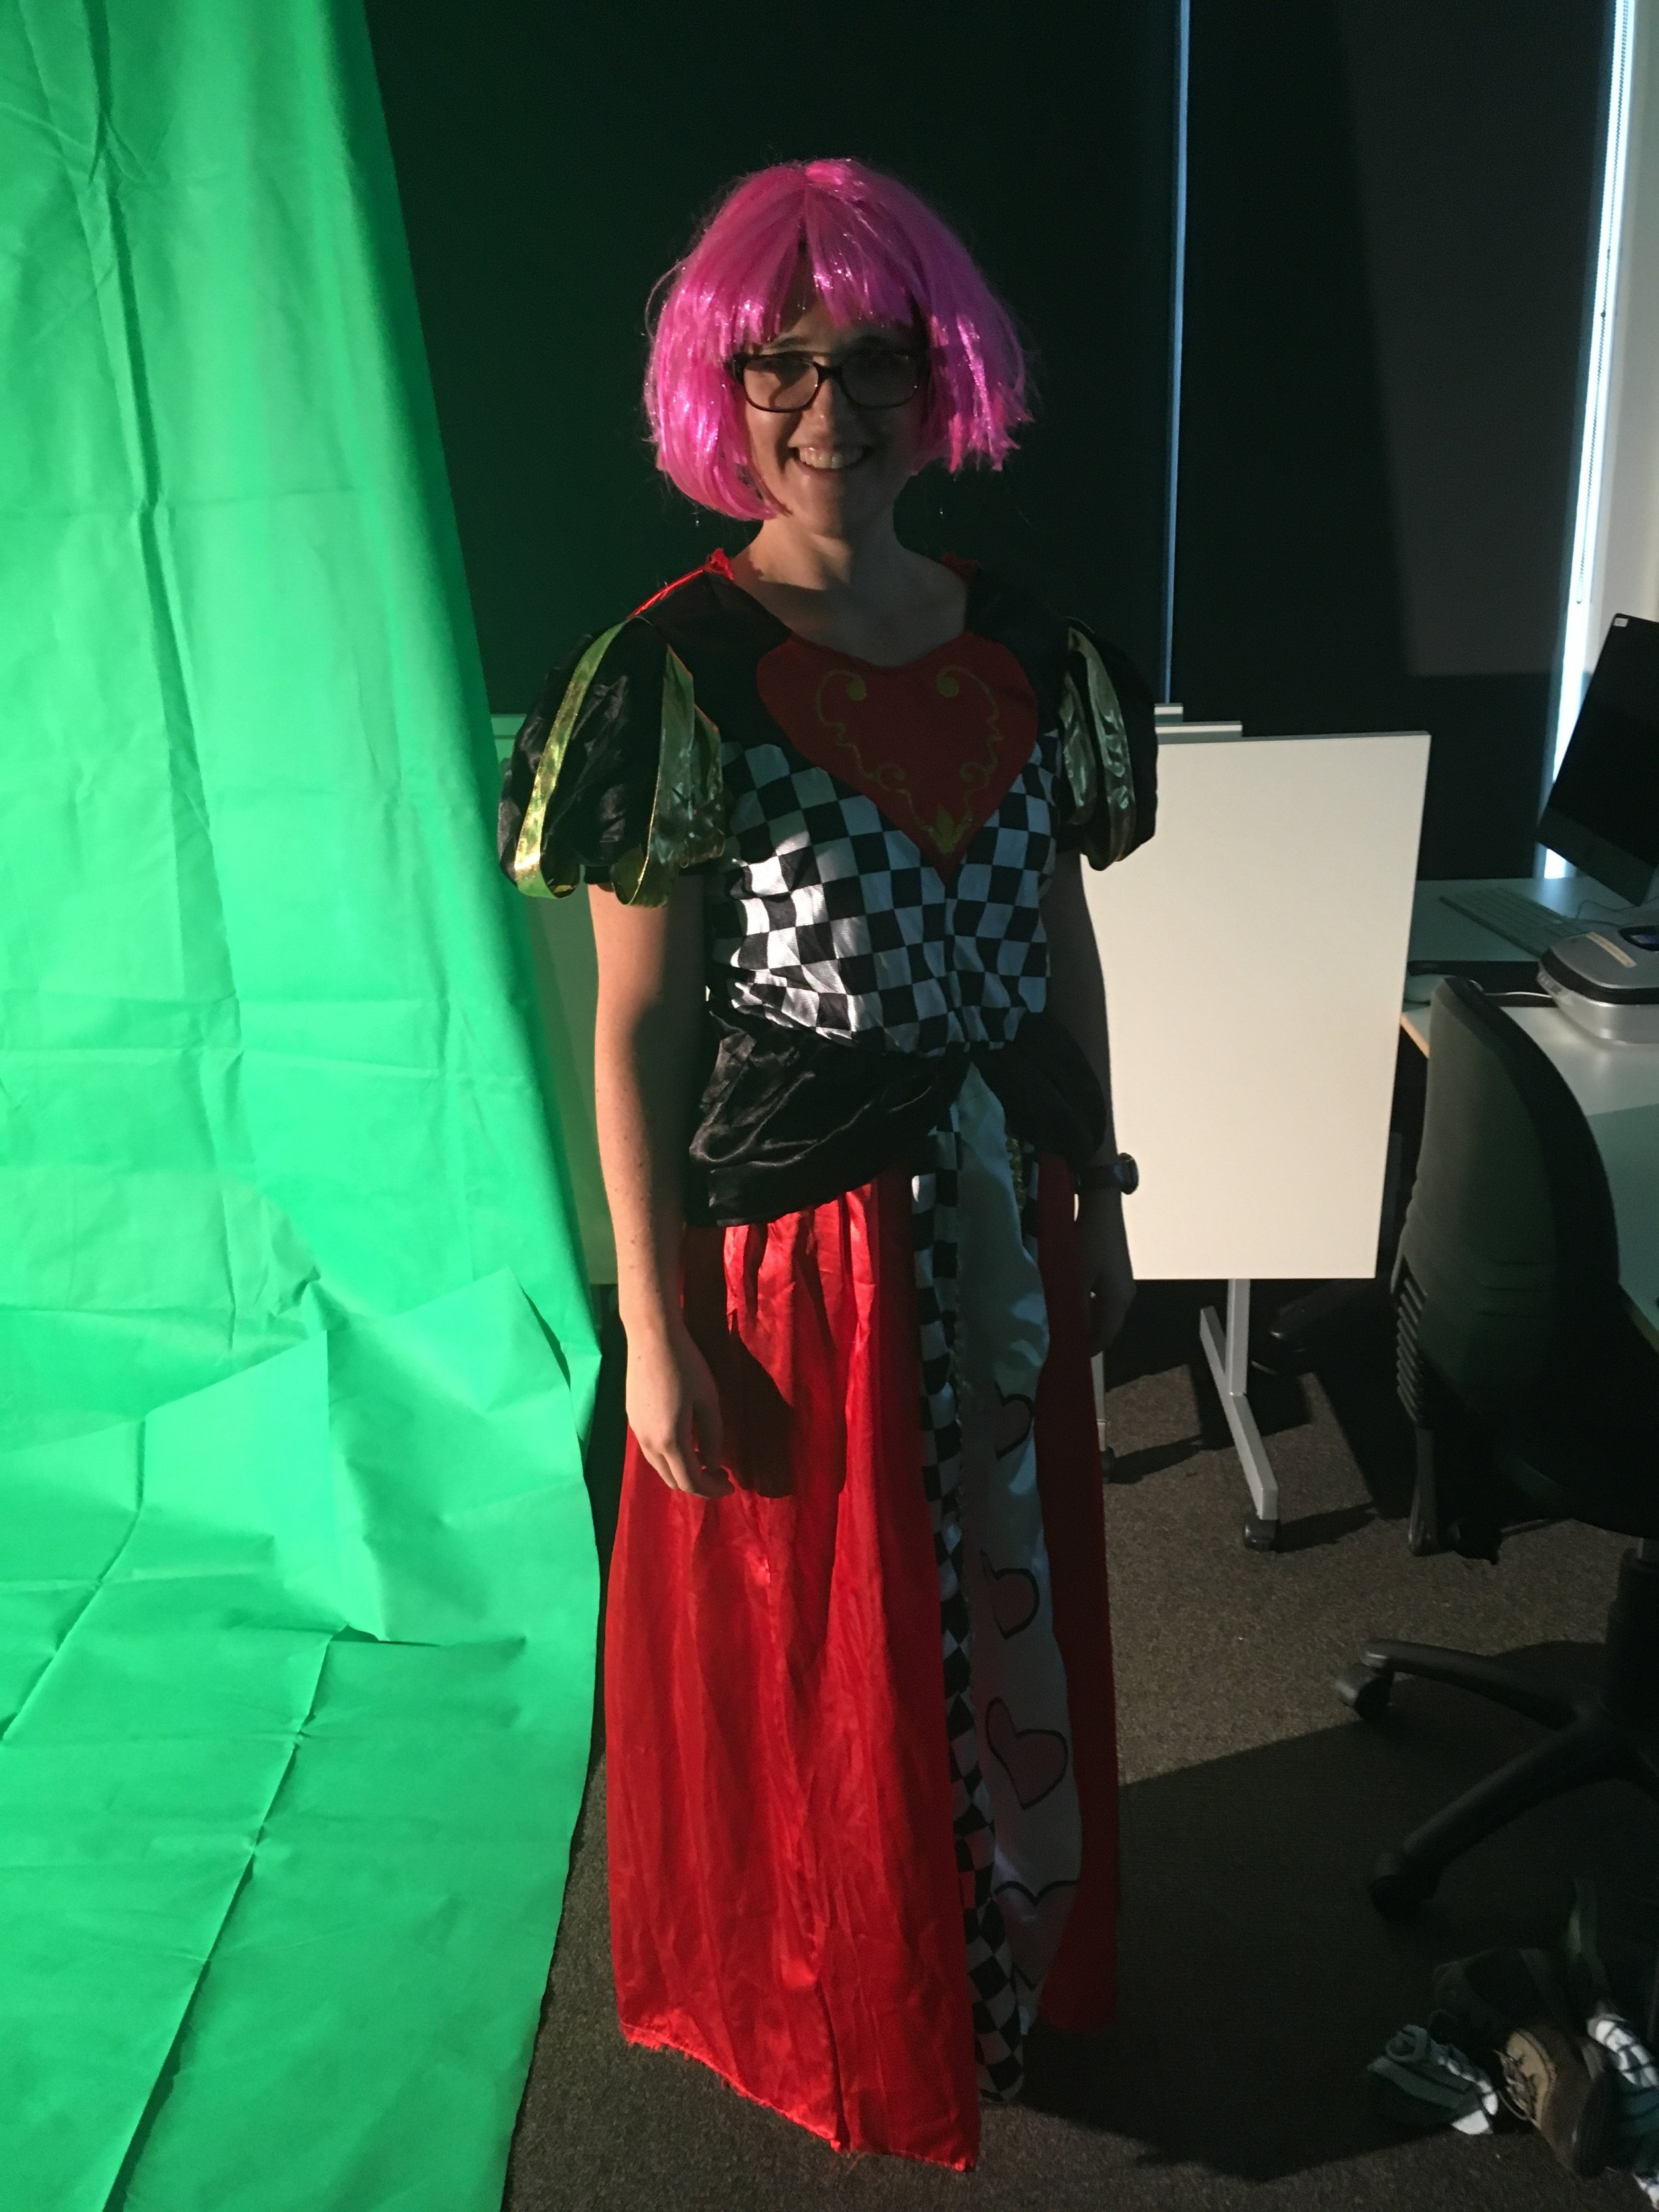 Mary-Ann as Queen of Hearts preparing for green screen experiment